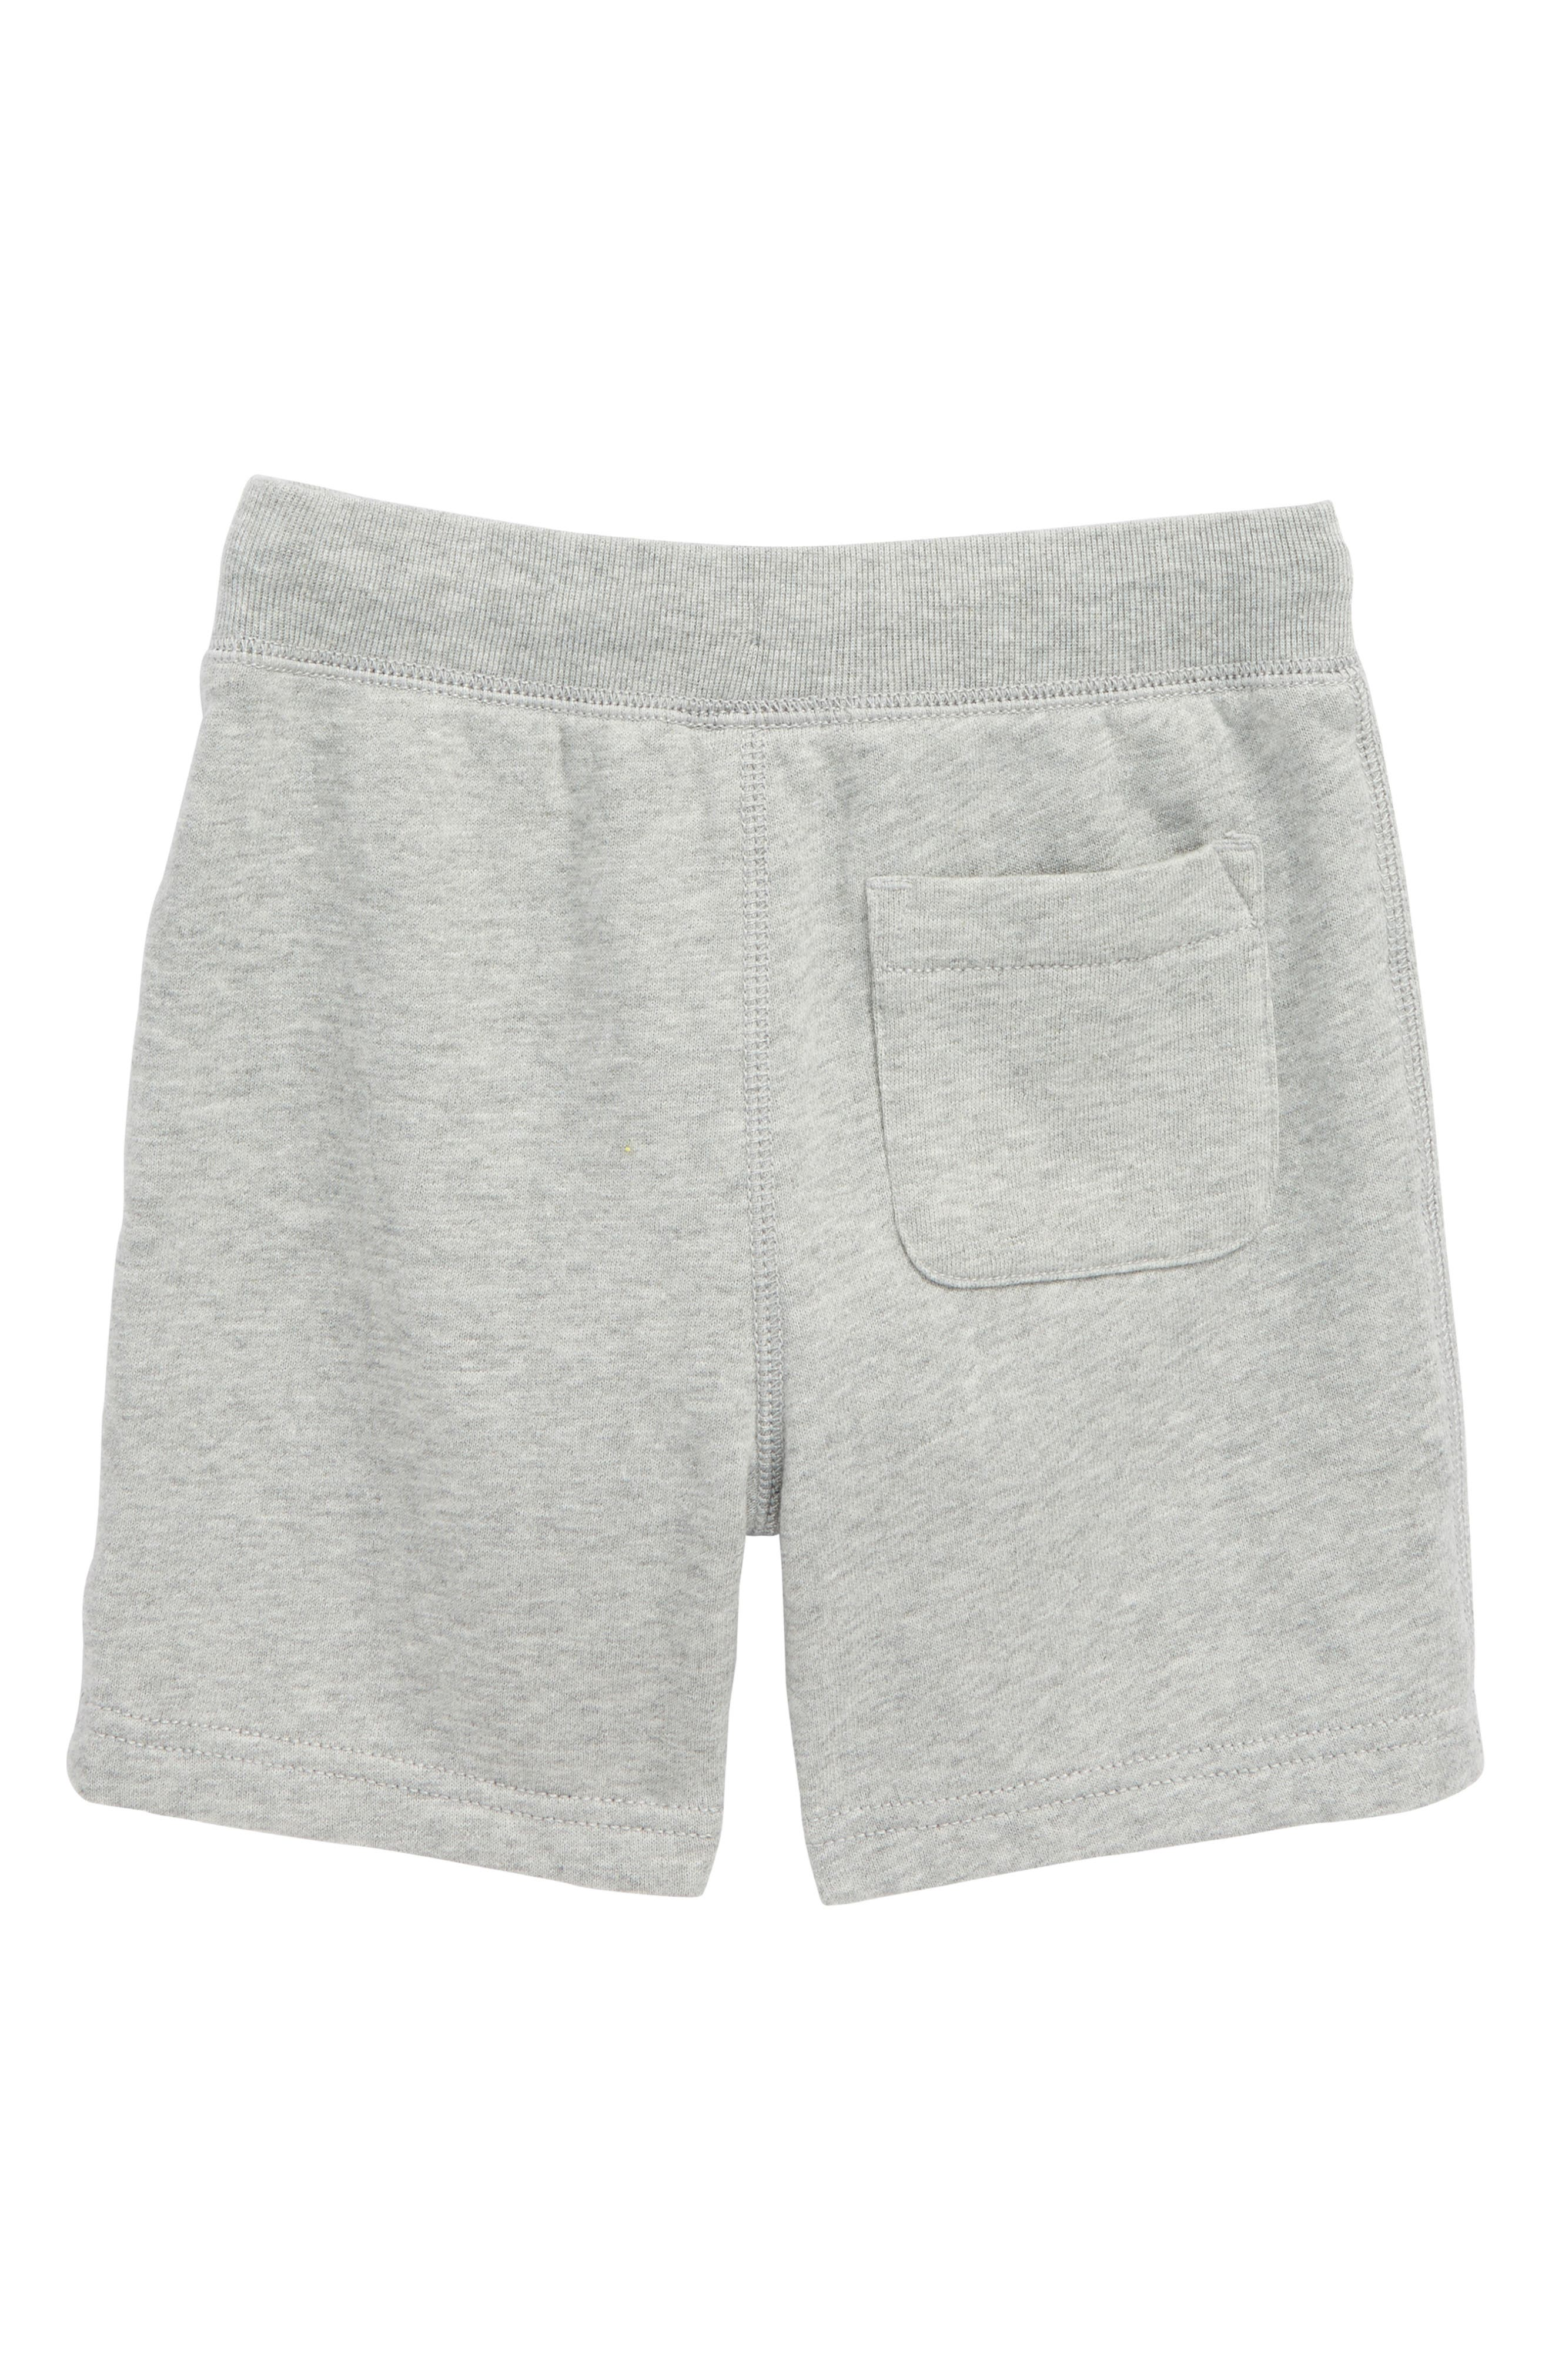 Classic Sweat Shorts,                             Alternate thumbnail 2, color,                             020